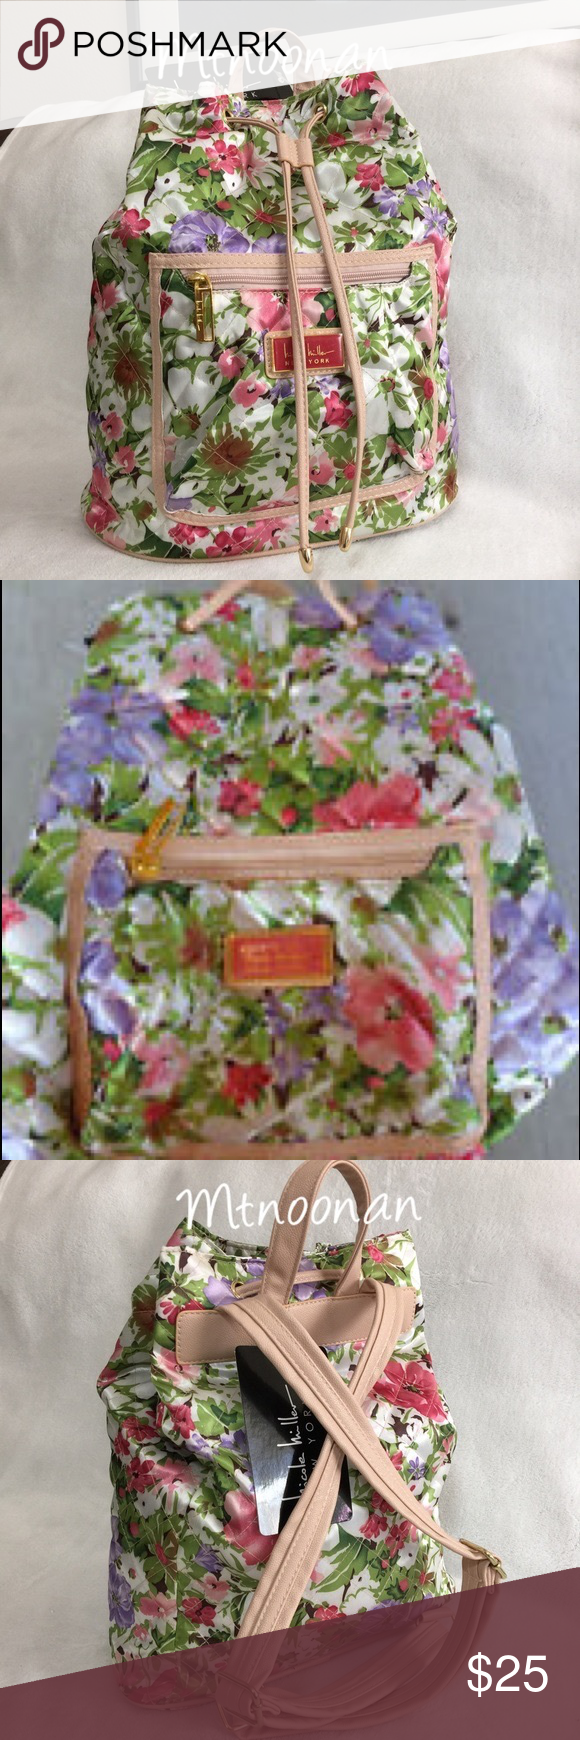 Nicole Miller Floral Backpack 13 by 15 by 6.5 I know the